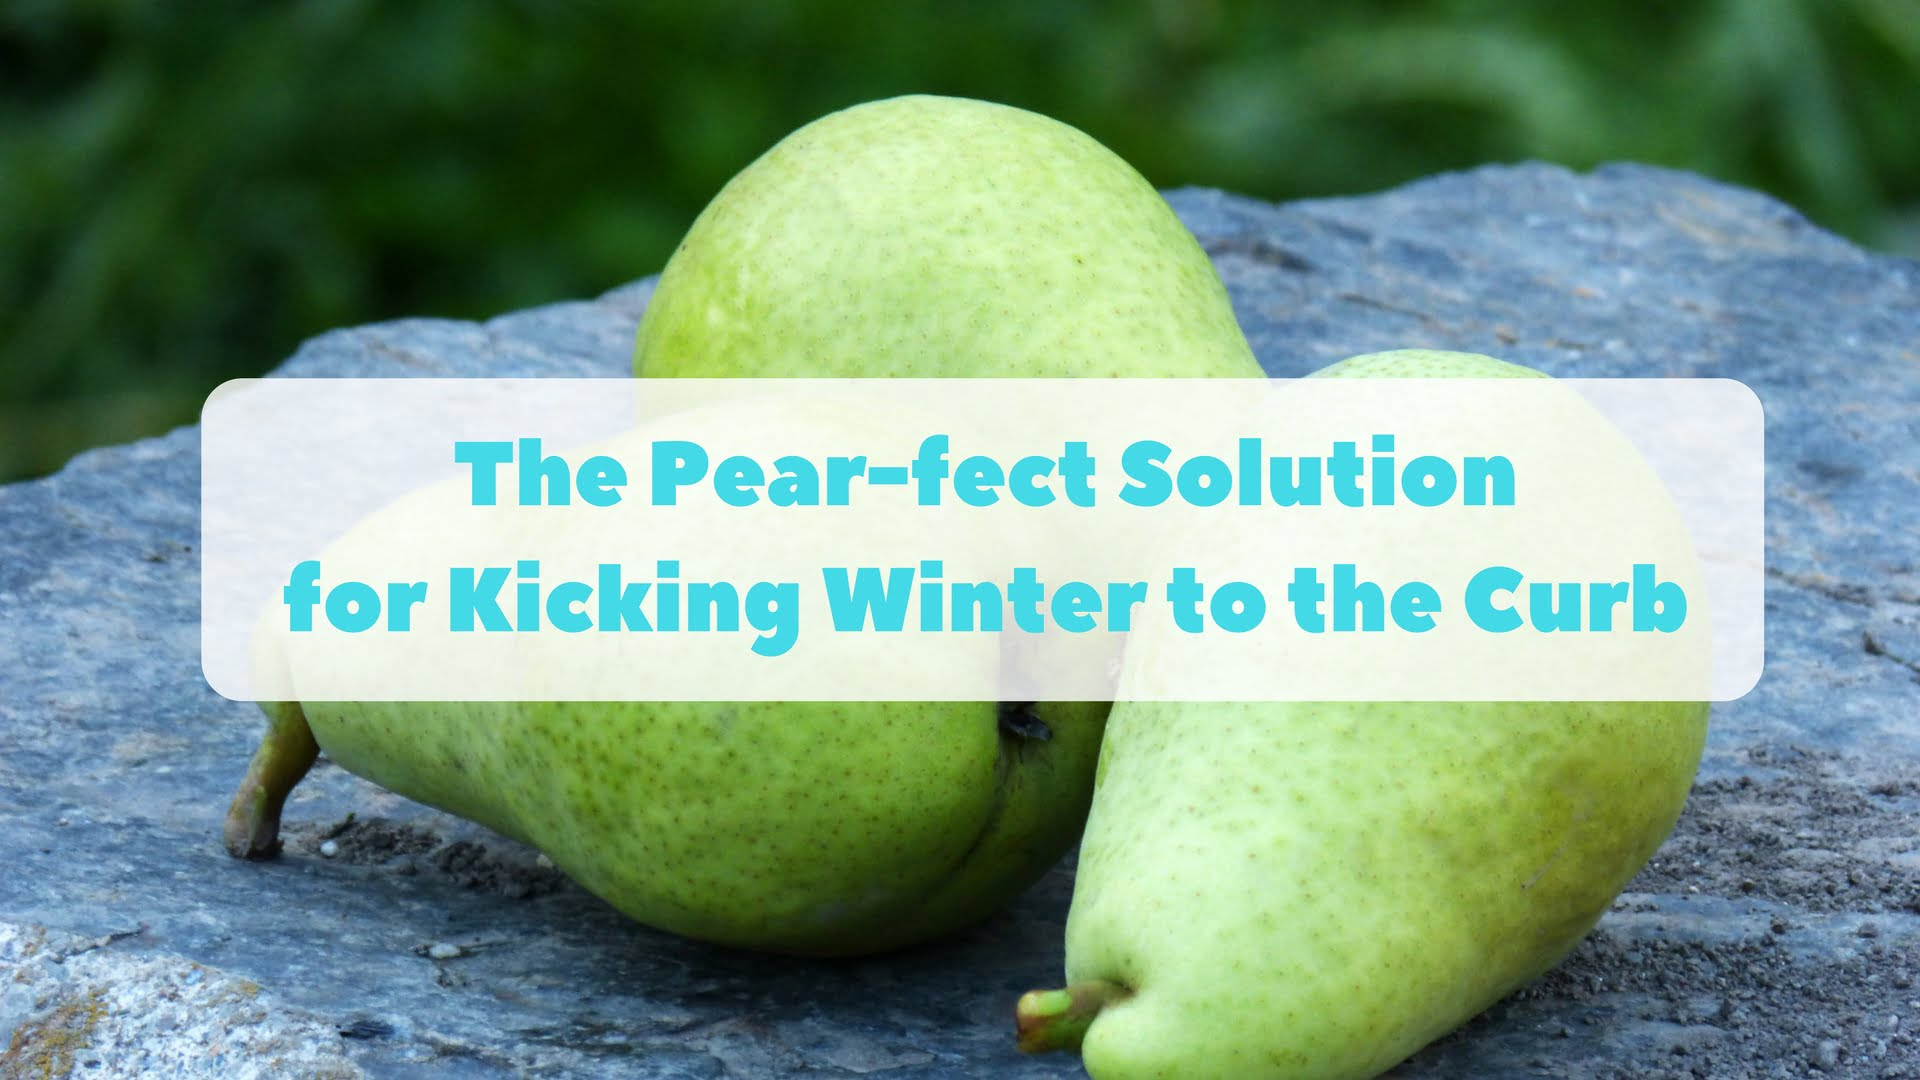 The Pear-fect Solution for Kicking Winter to the Curb